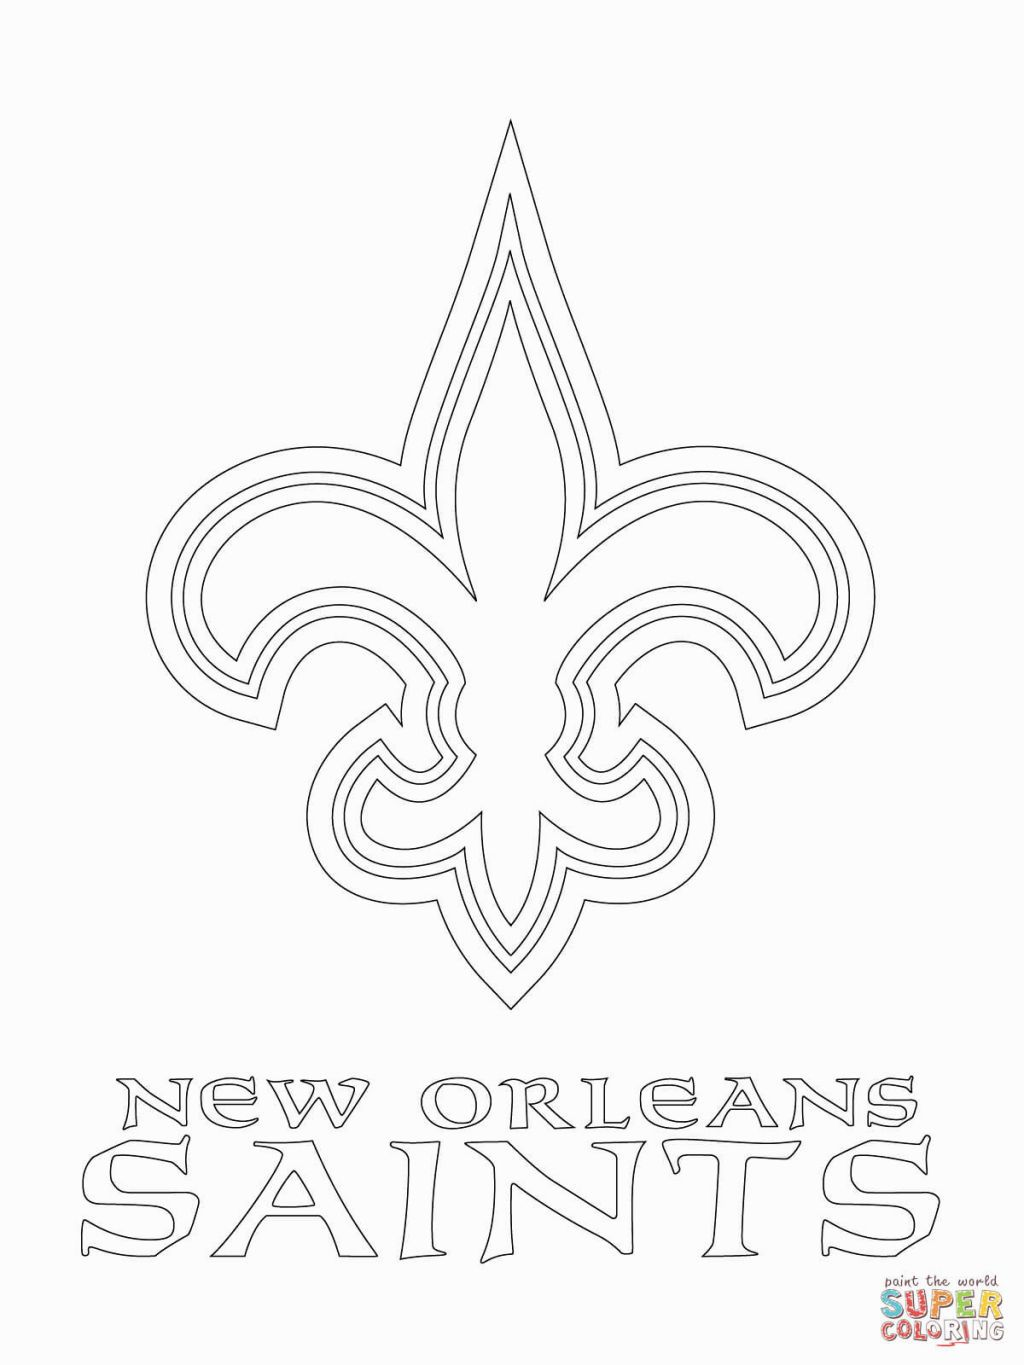 Saints Coloring Pages Football Coloring Pages New Orleans Saints